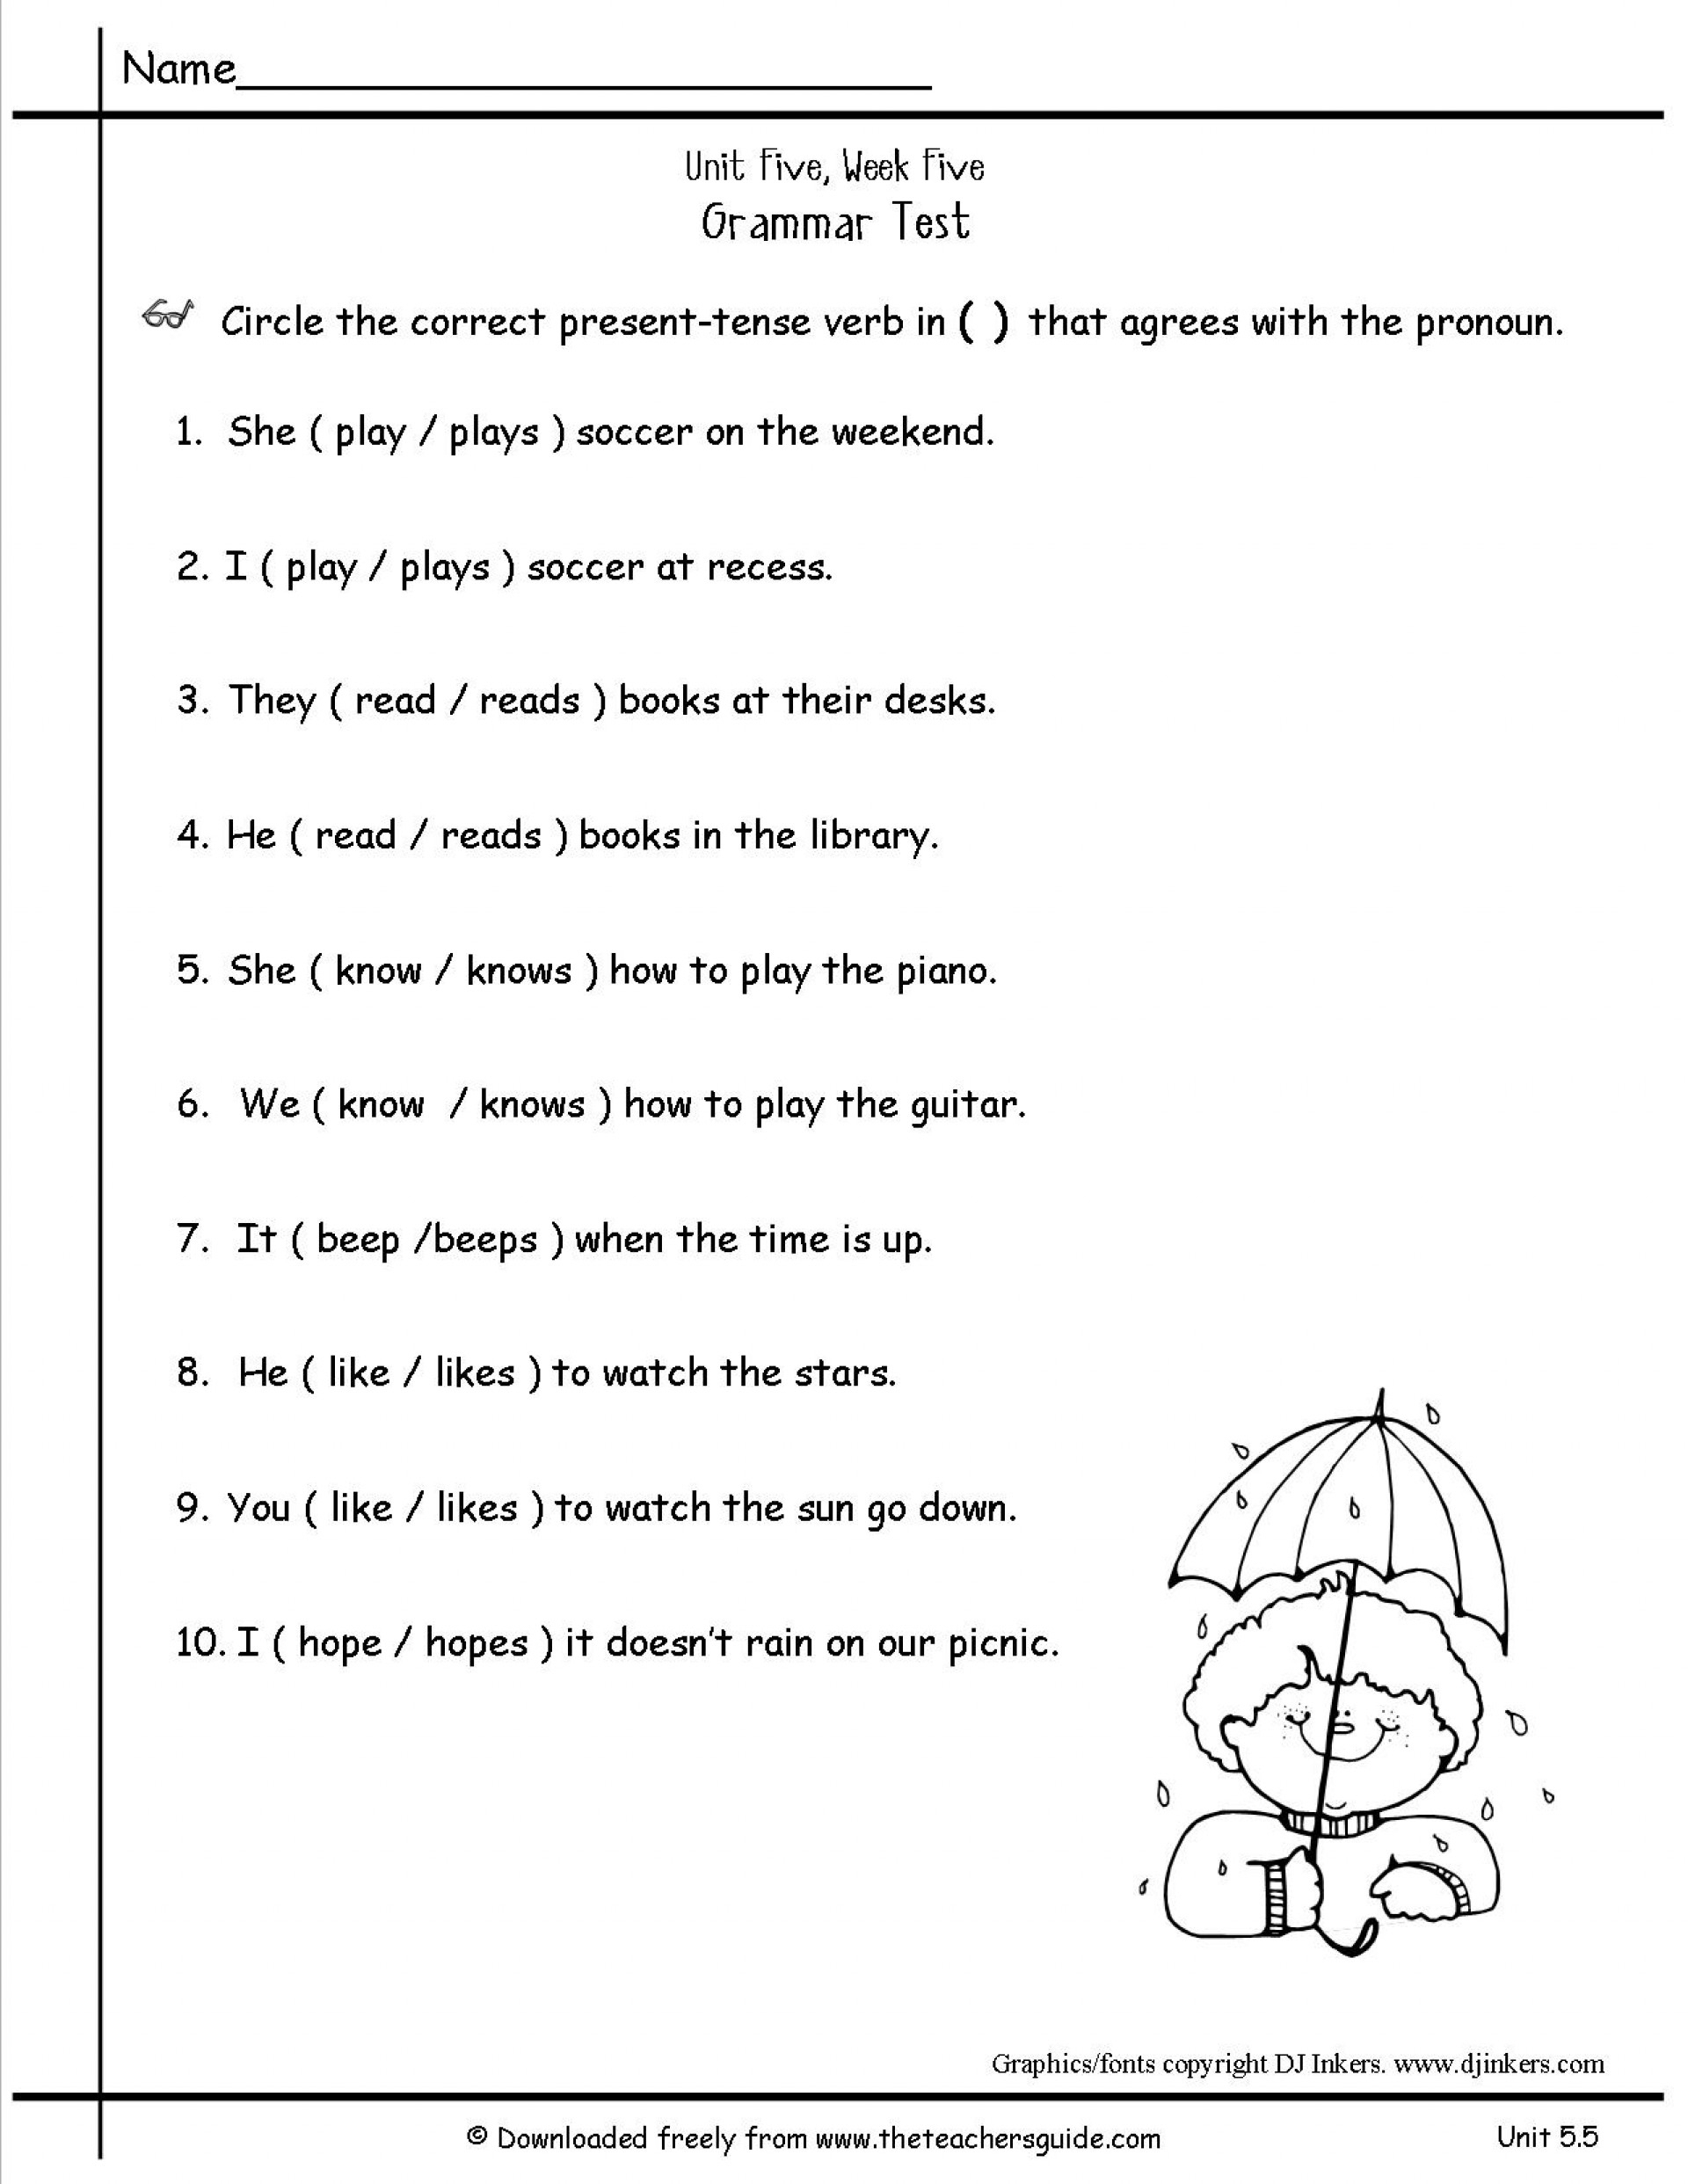 Pronoun Worksheets 2Nd Grade For Print | Worksheet News - Free | Free Printable Pronoun Worksheets For 2Nd Grade